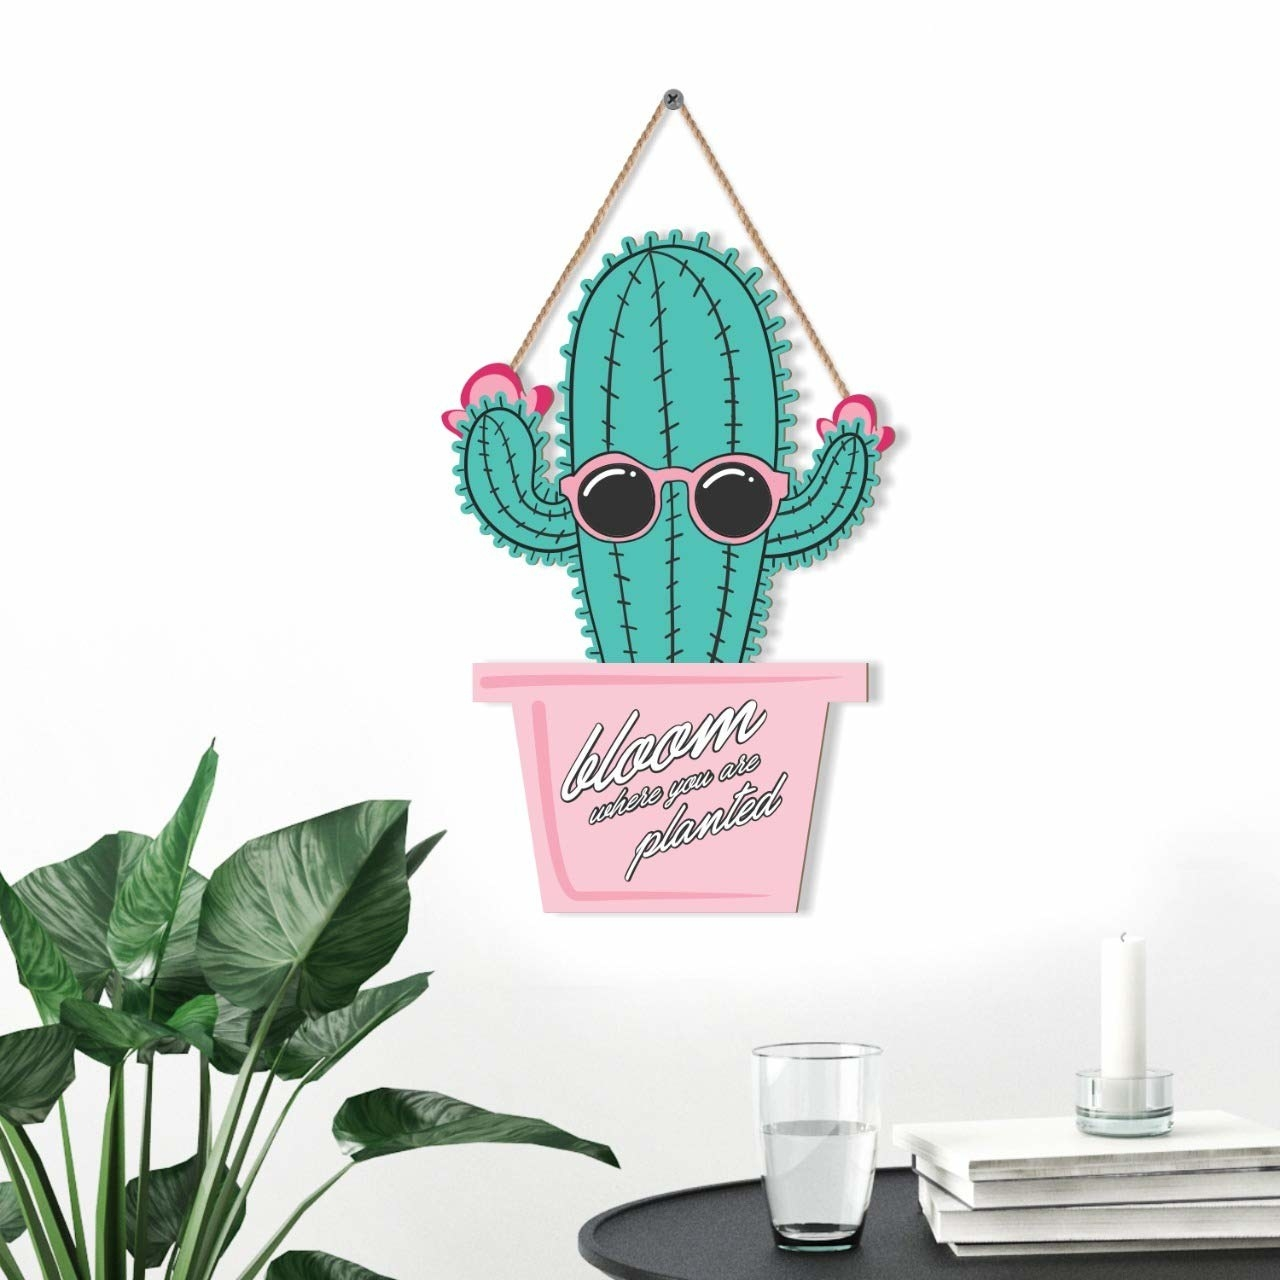 A wall hanging with a  cactus wearing sunglasses on a pink planter.